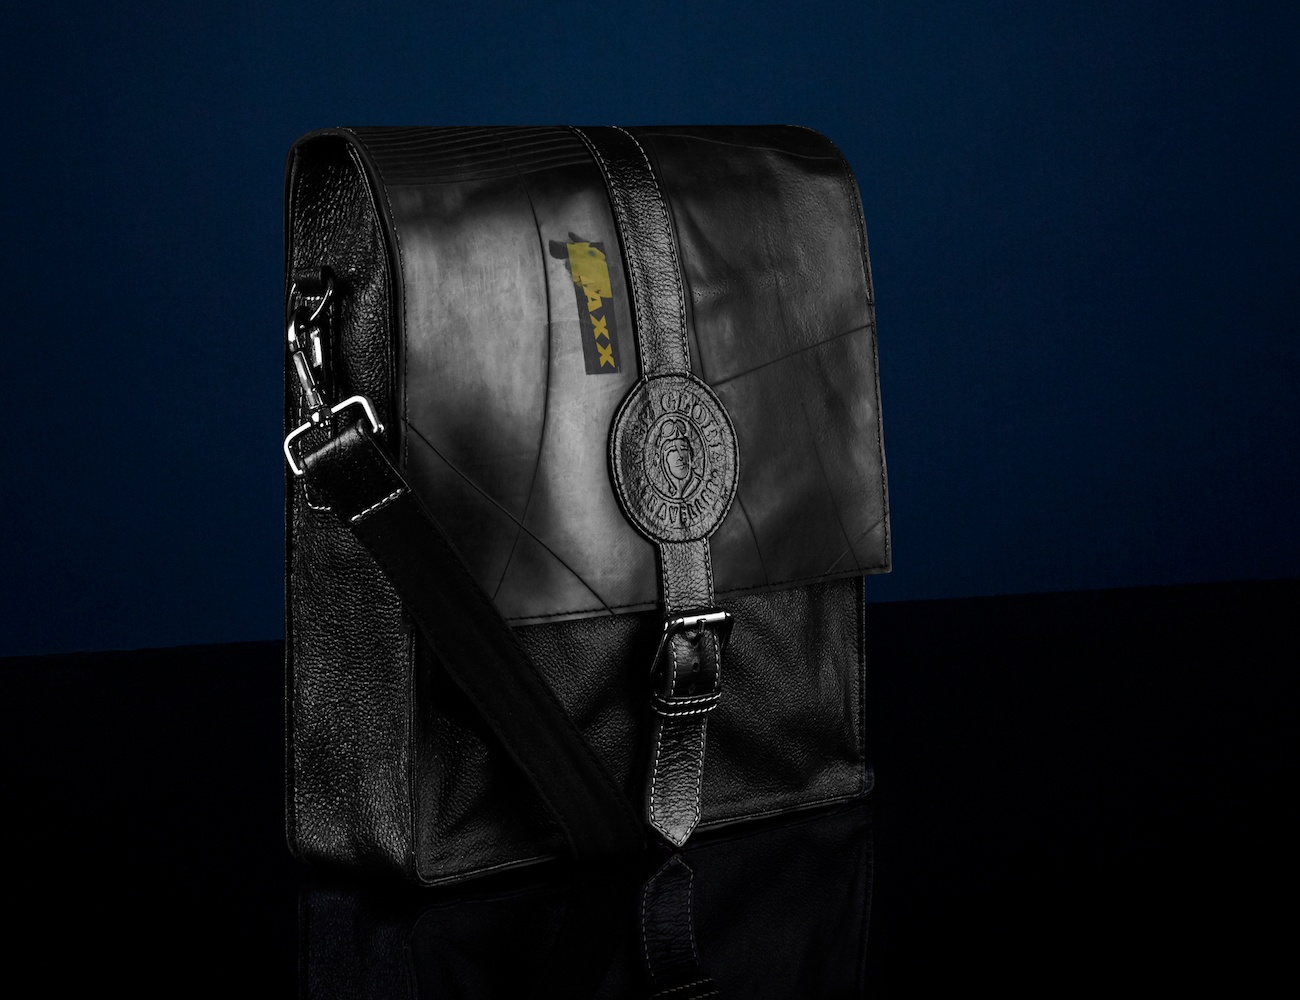 New Globe Traveller Ethical Luxury Bags